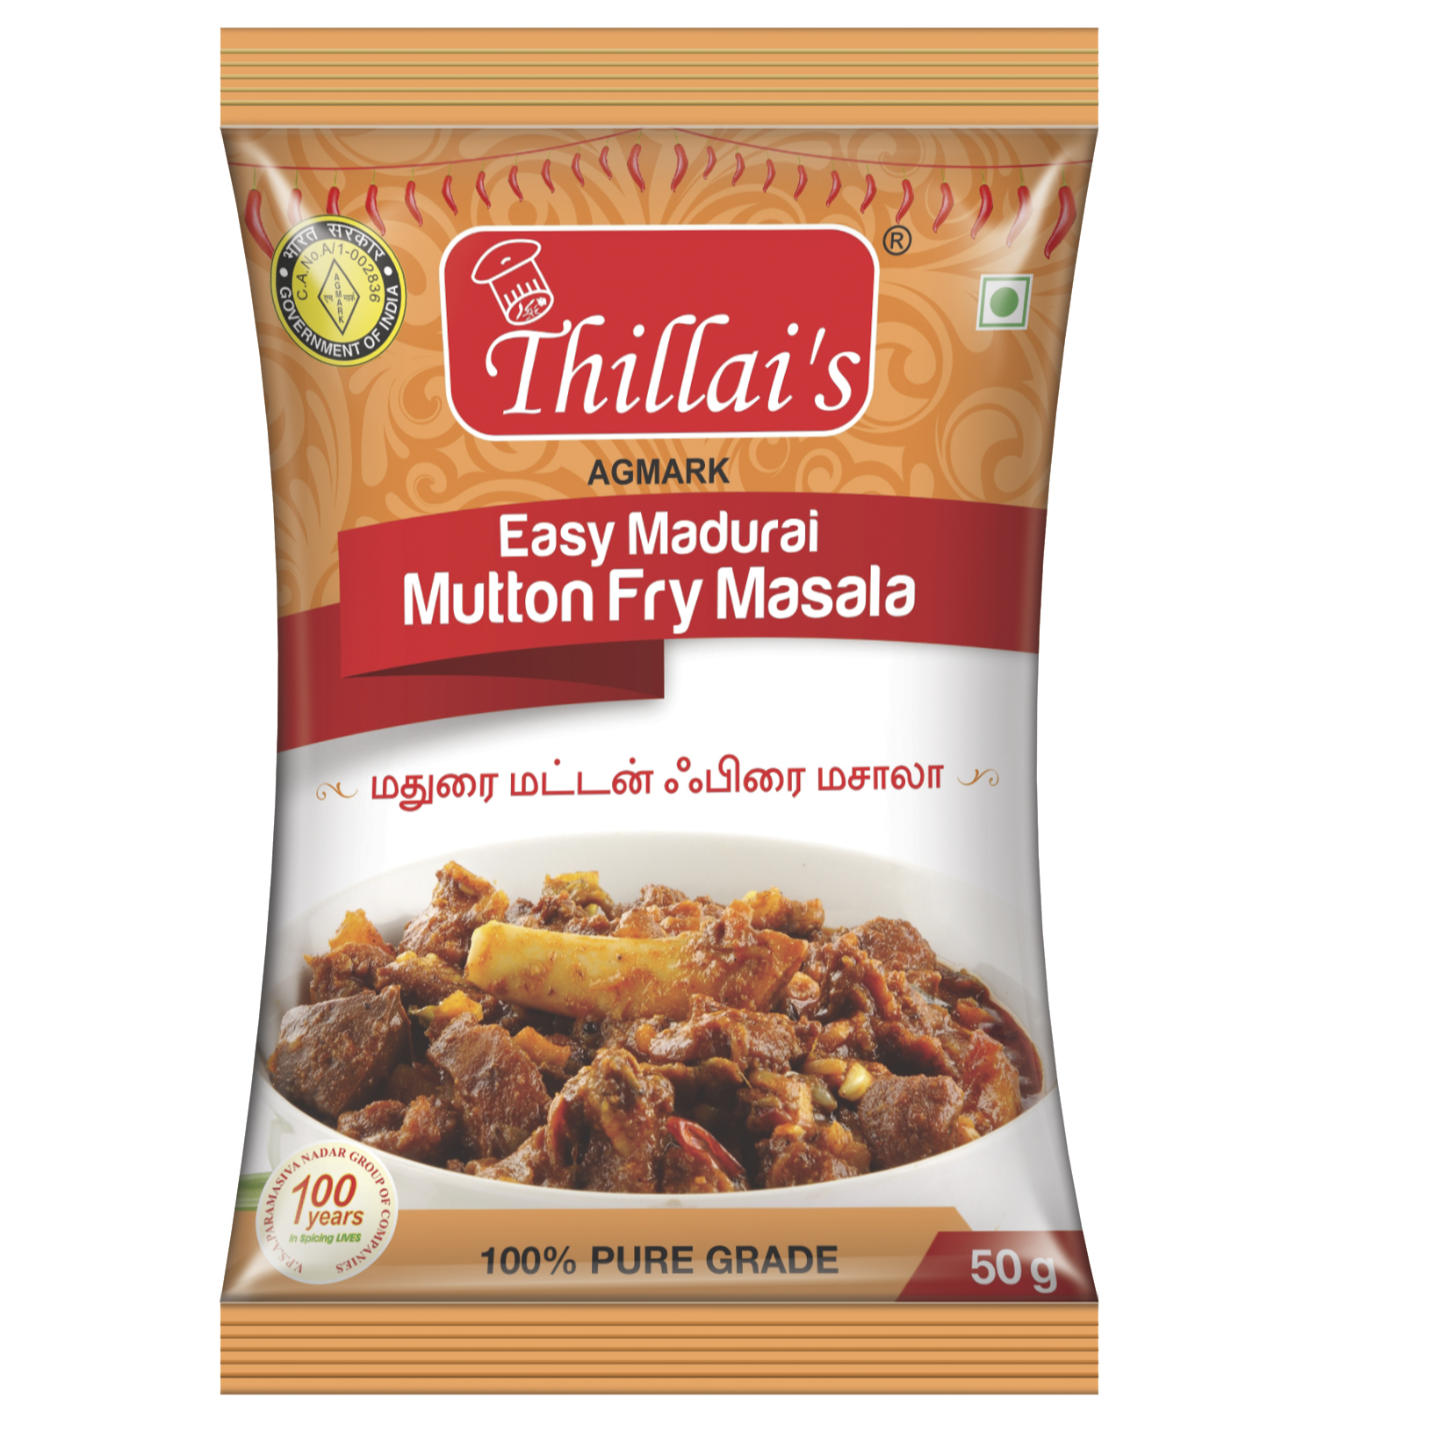 Thillais Easy Madurai Mutton Fry Masala